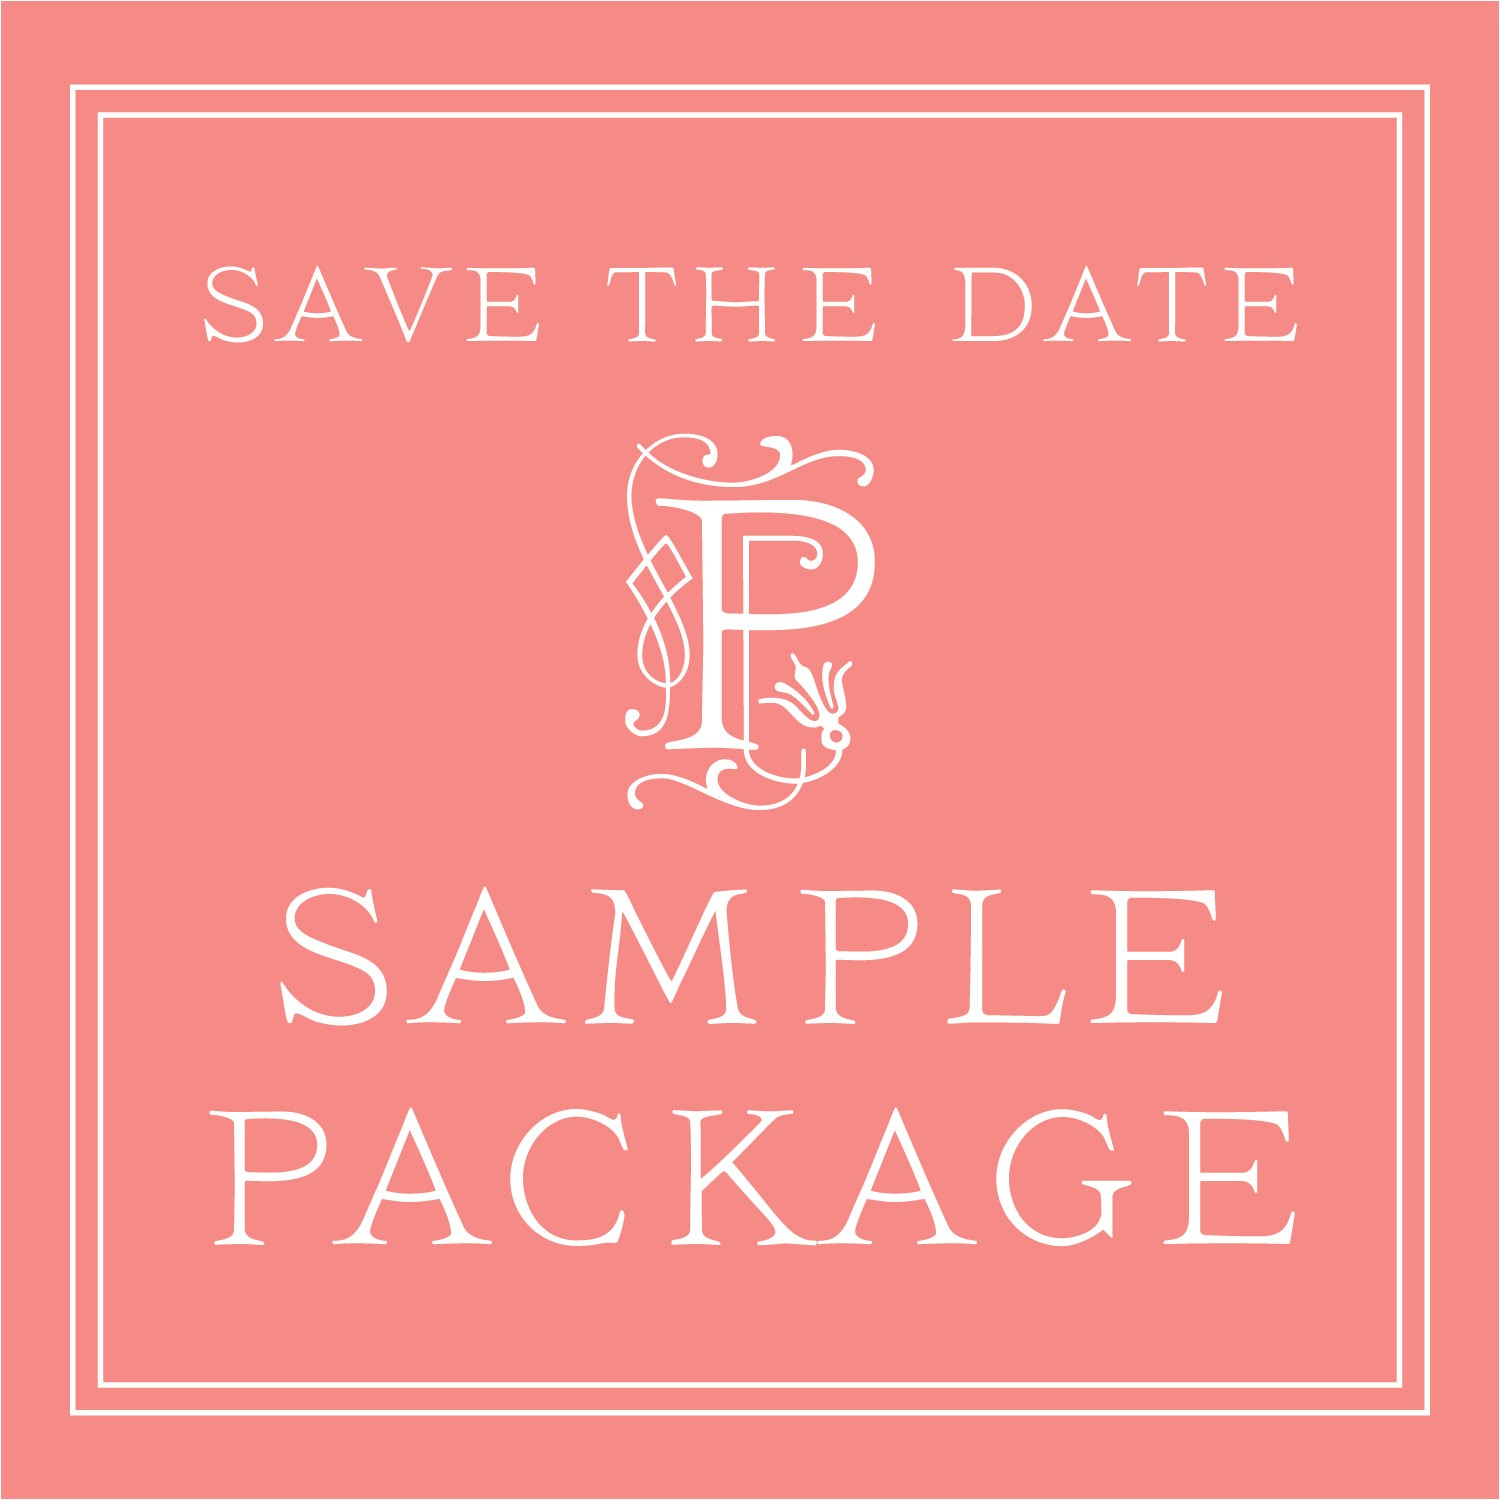 wedding save the date sample package classic save the date cards